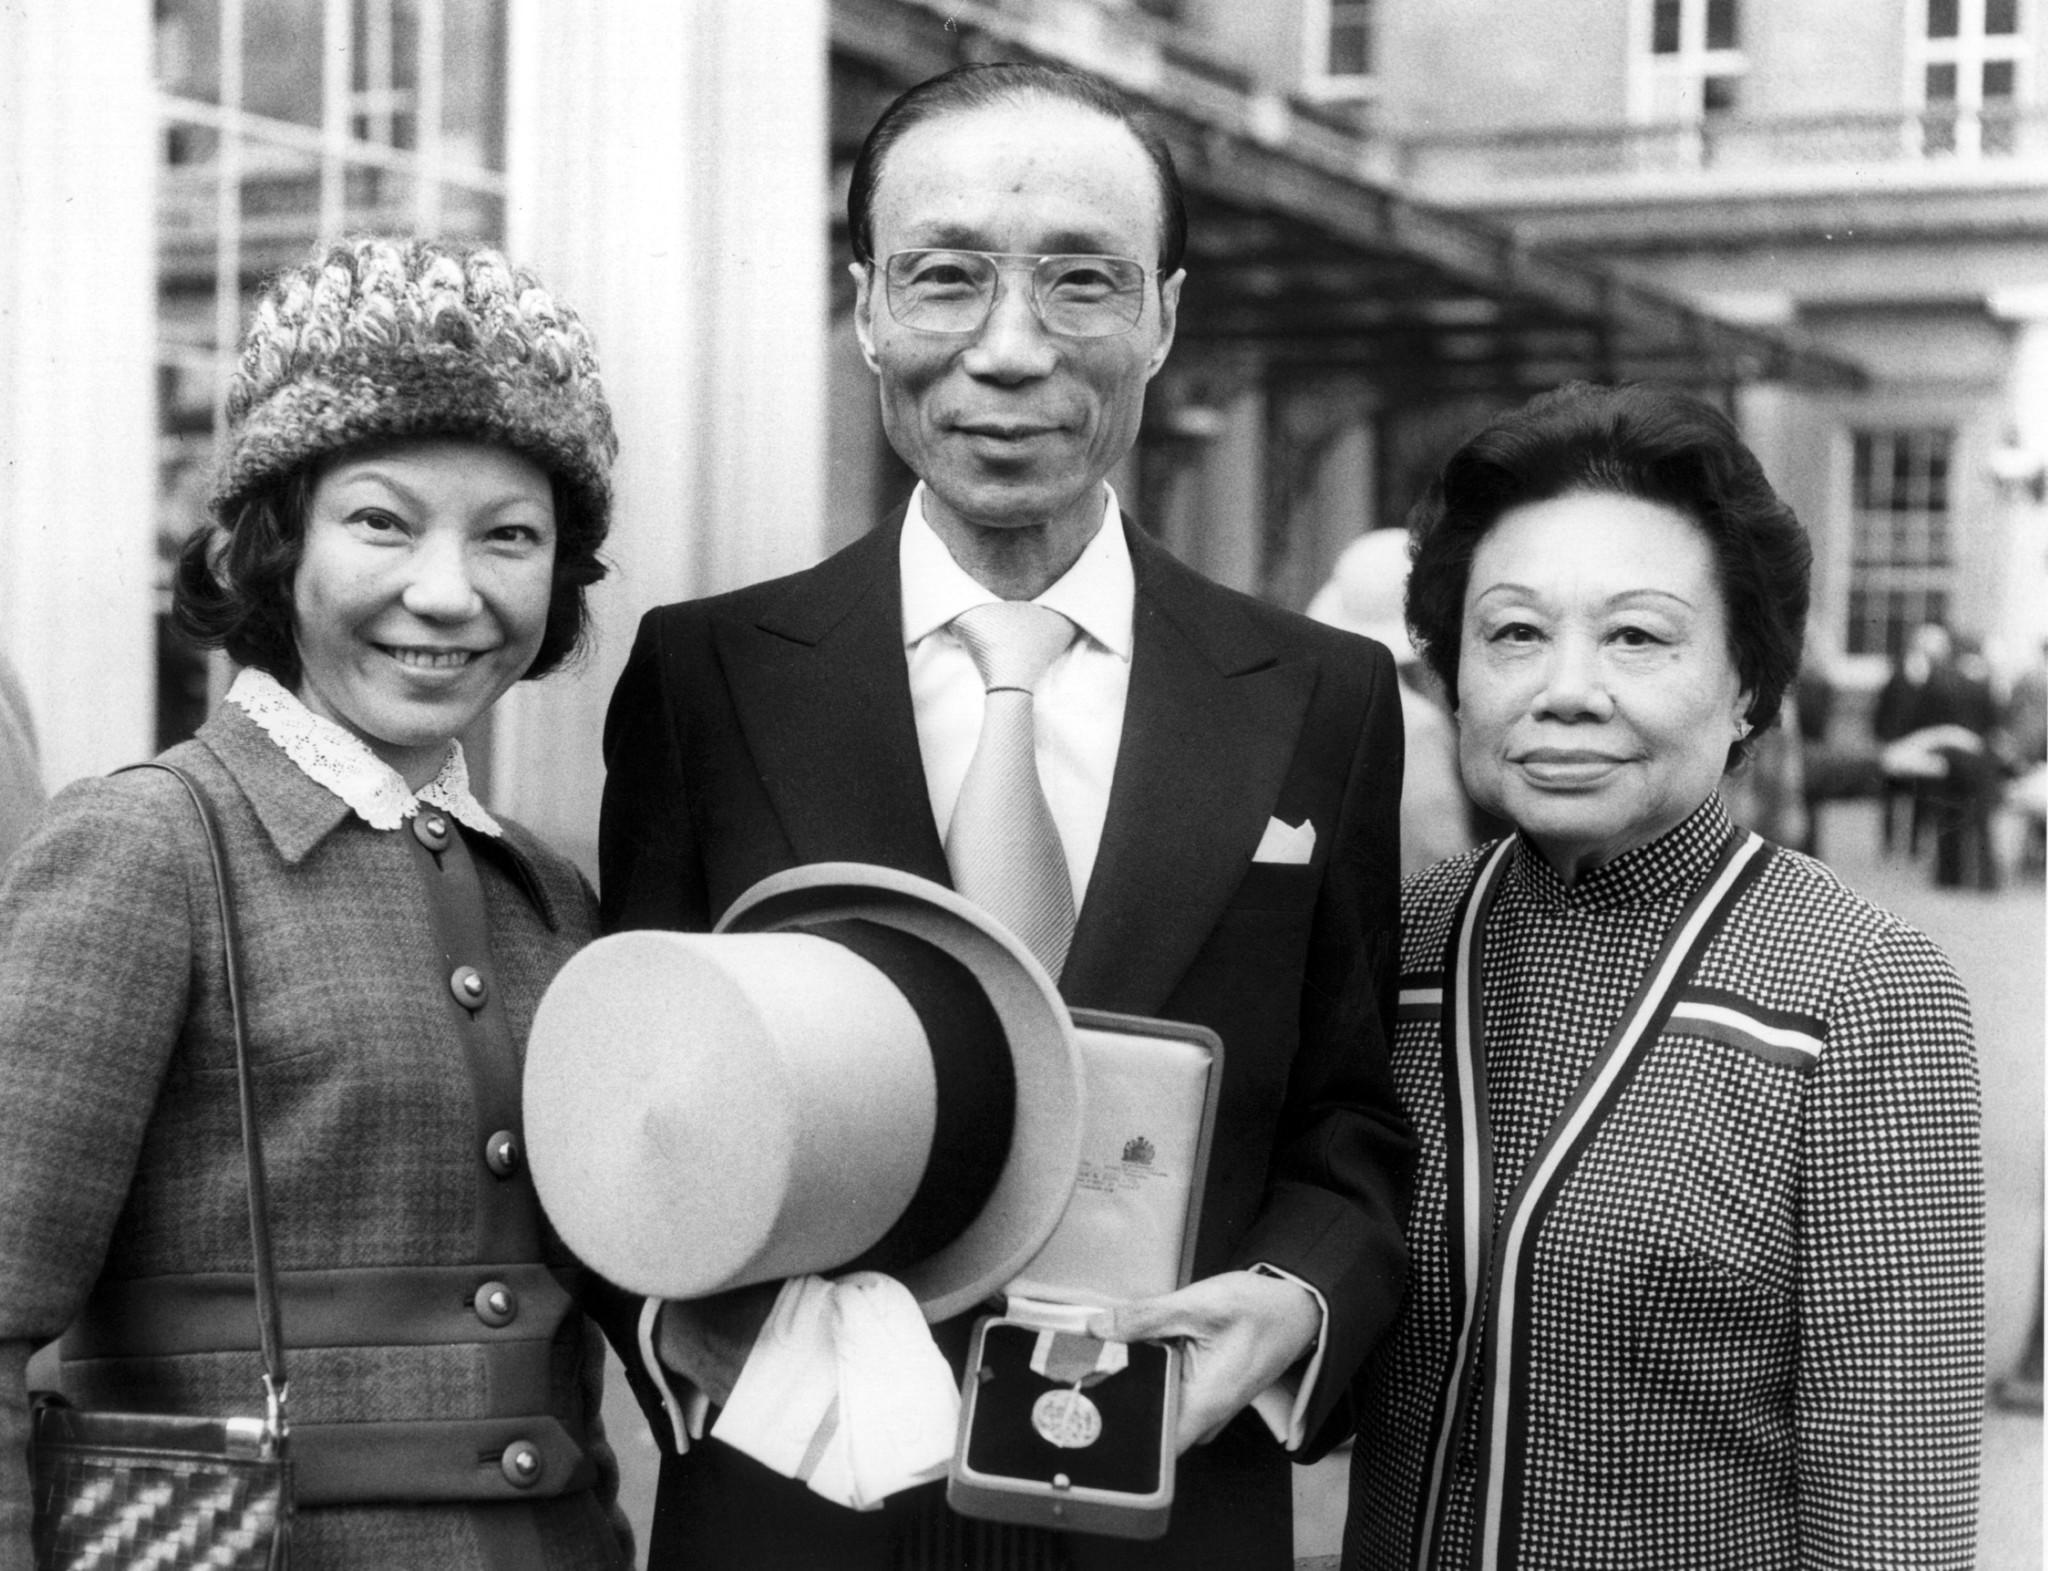 The King of Kung-Fu film makers, Sir Run Run Shaw, in London with his wife and daughter, after receiving a Knighthood from the Queen.